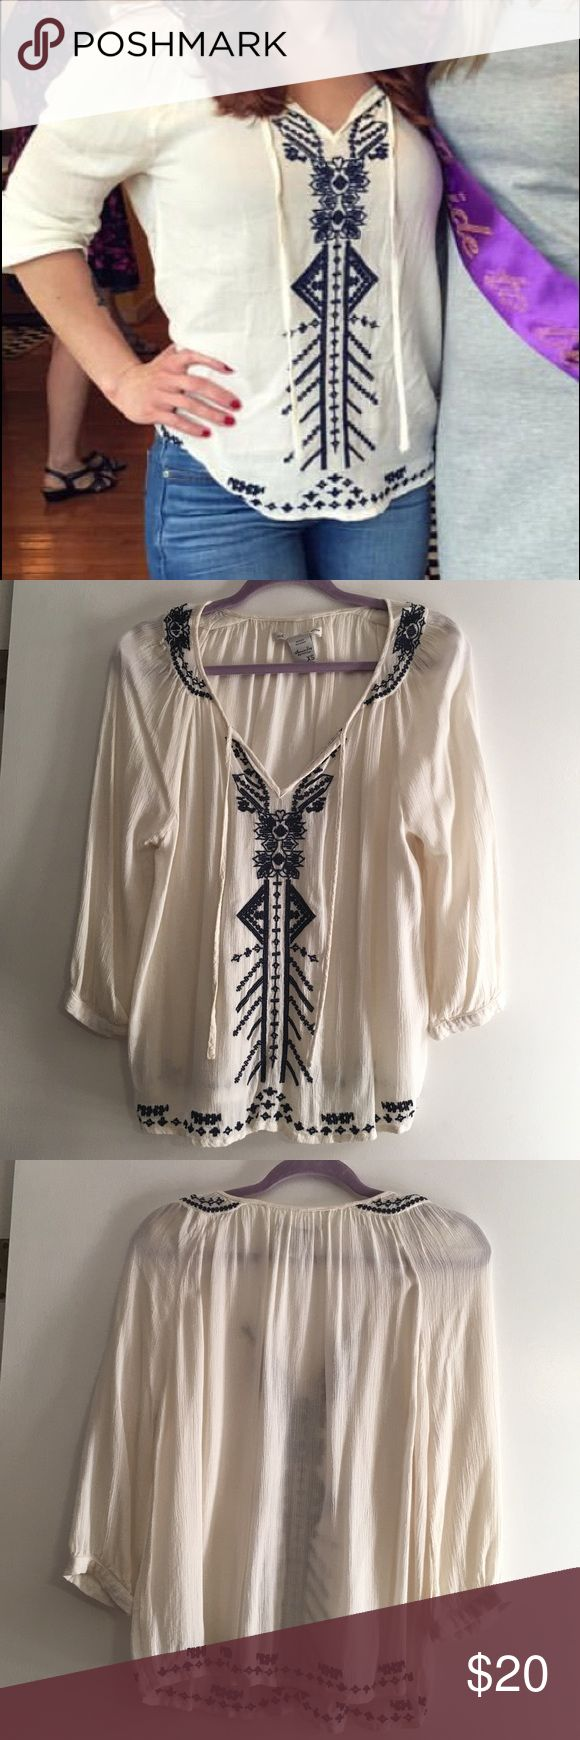 American Rag Bohemian Style Top Only worn once. Very comfortable!!! Cream color with navy blue embroidery. Comes from smoke free, pet free home. Shipping dates are Tuesday through Friday American Rag Tops Blouses